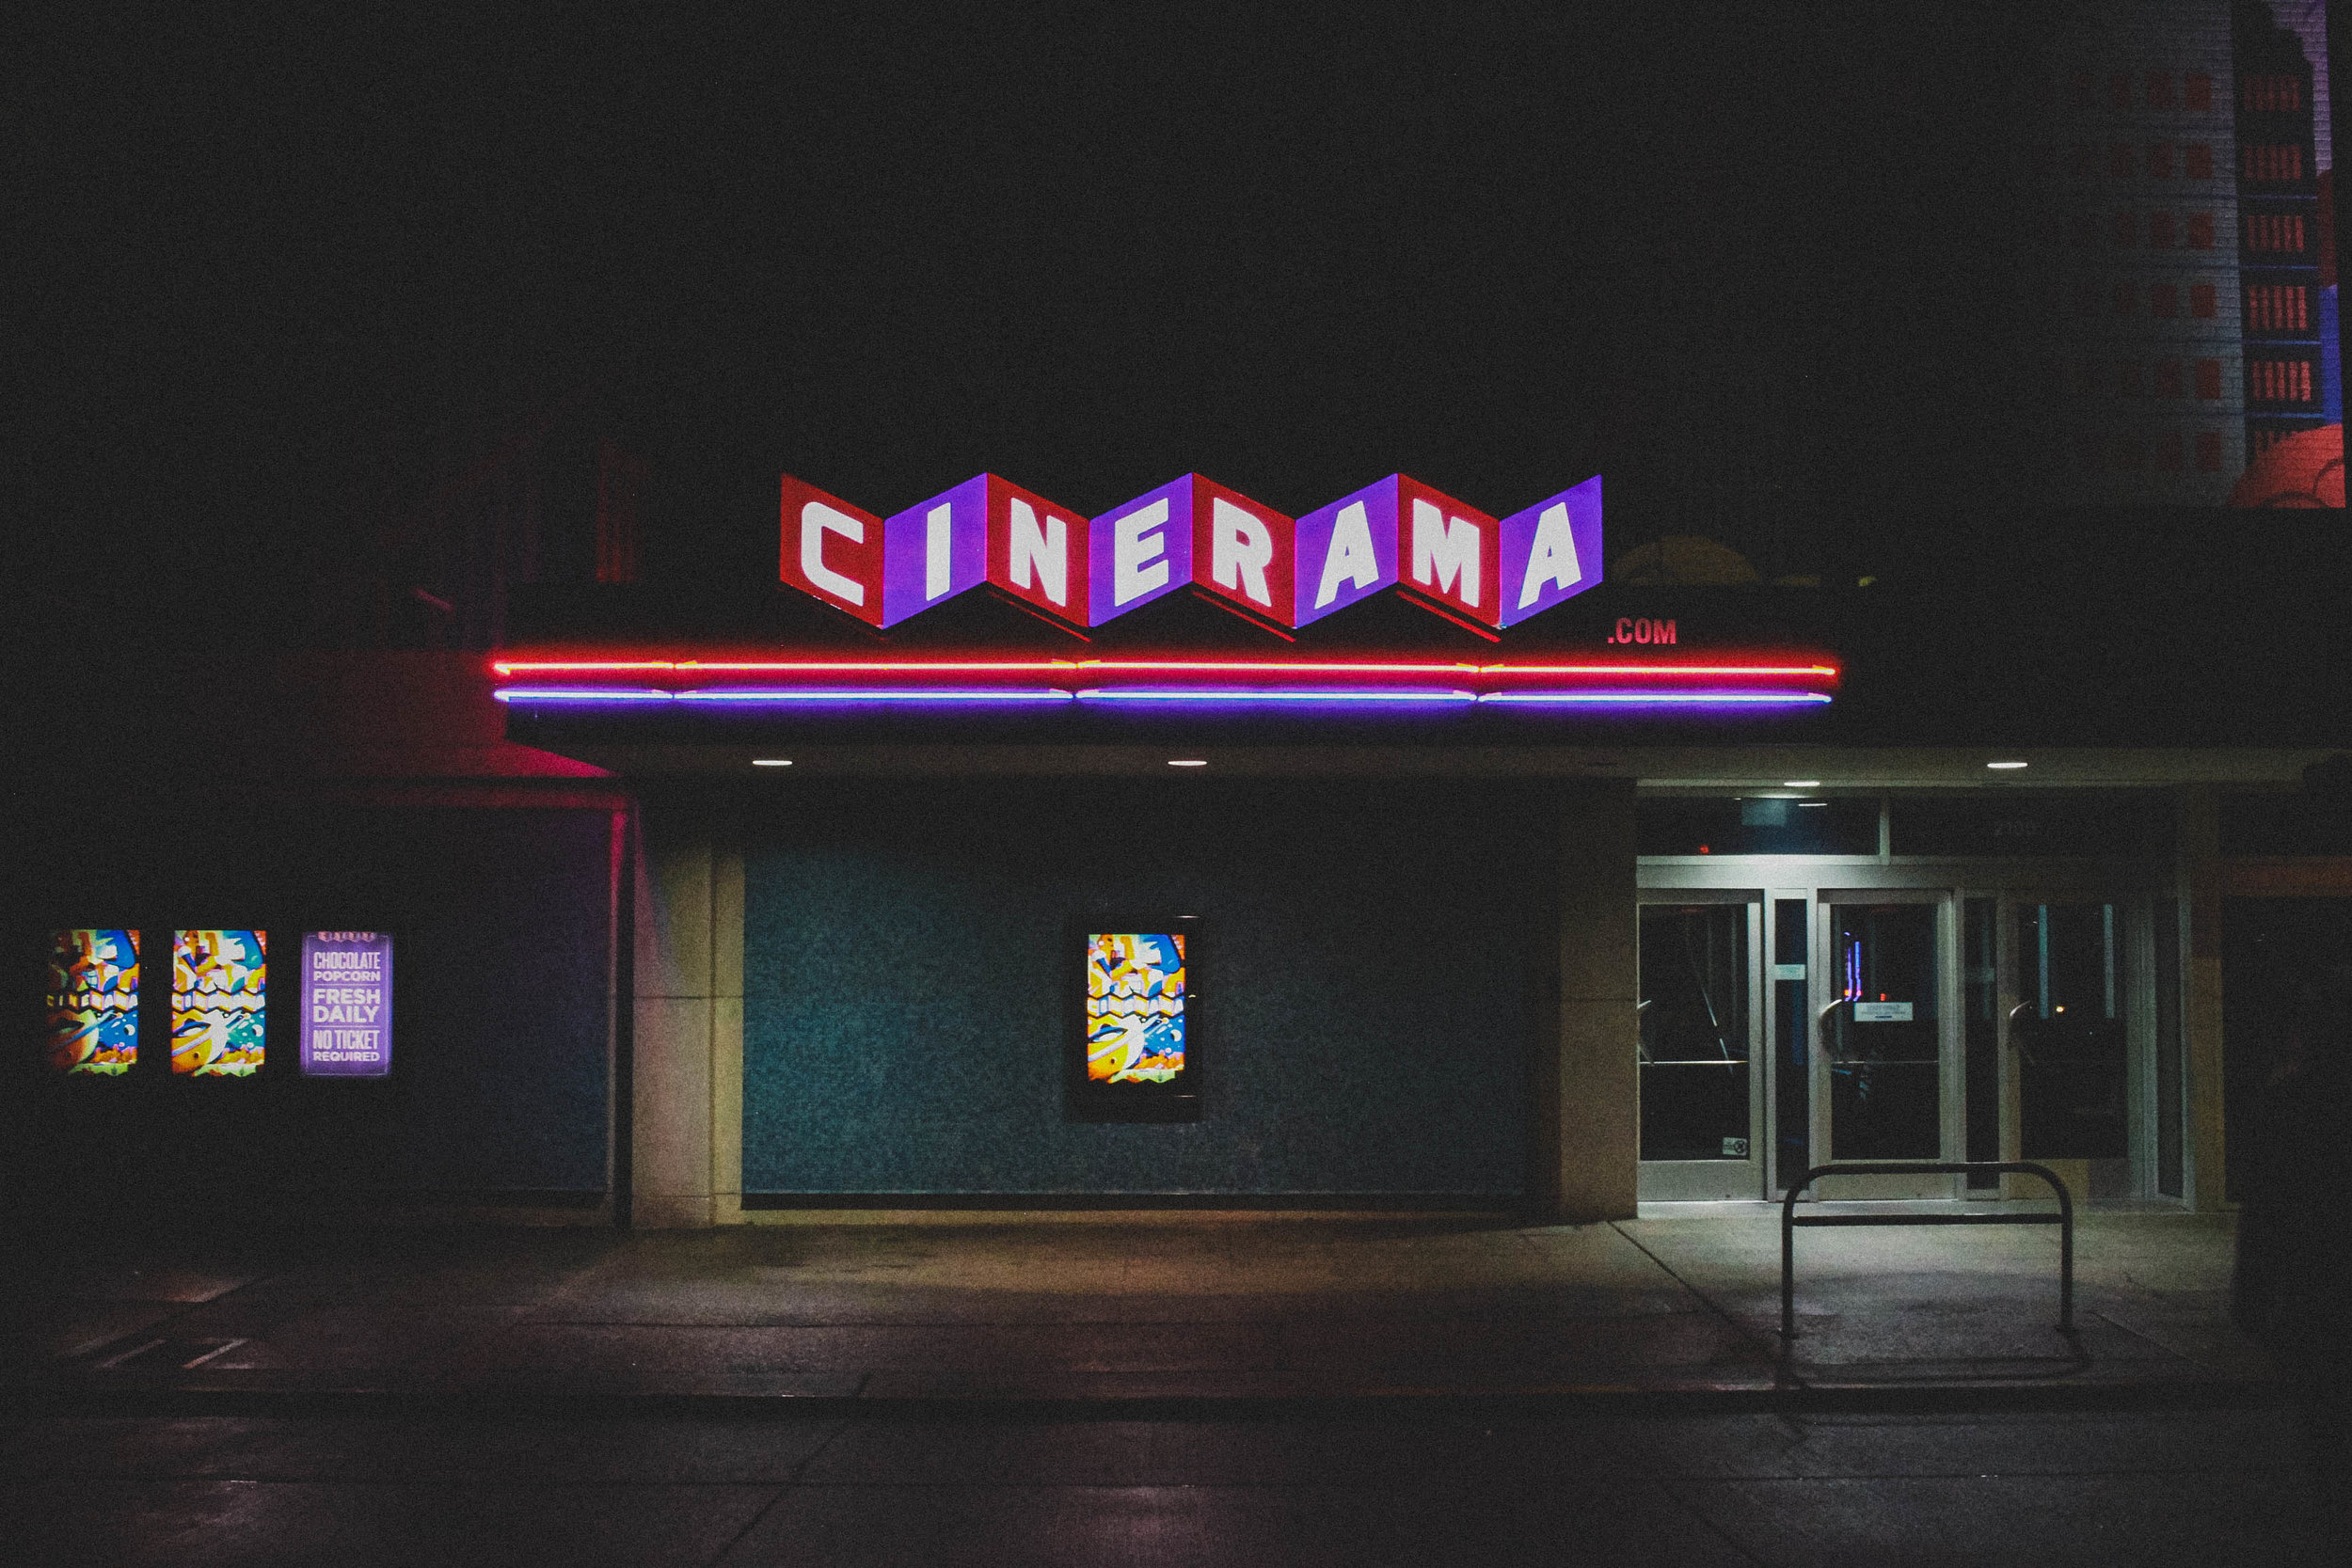 Seattle_Cinemacom.jpg